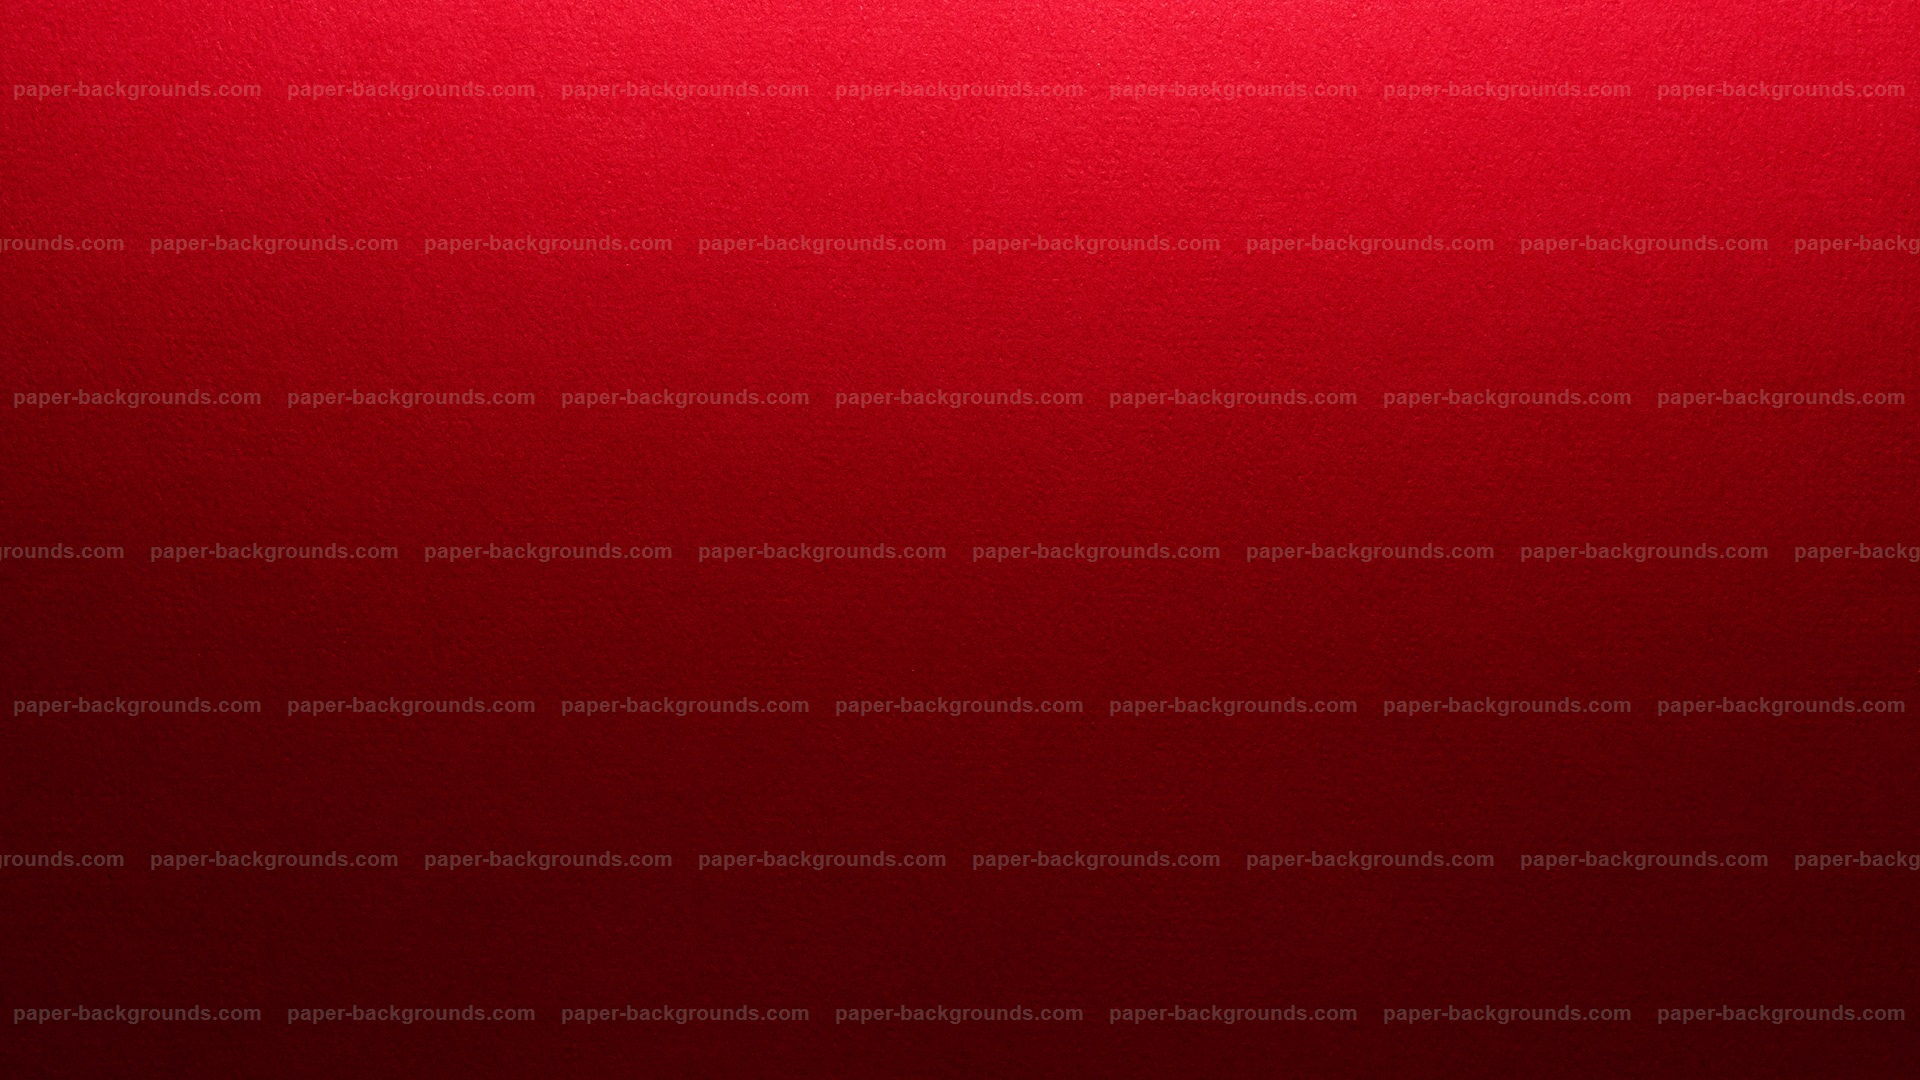 Paper Backgrounds | red-textured-cardboard-background-hd